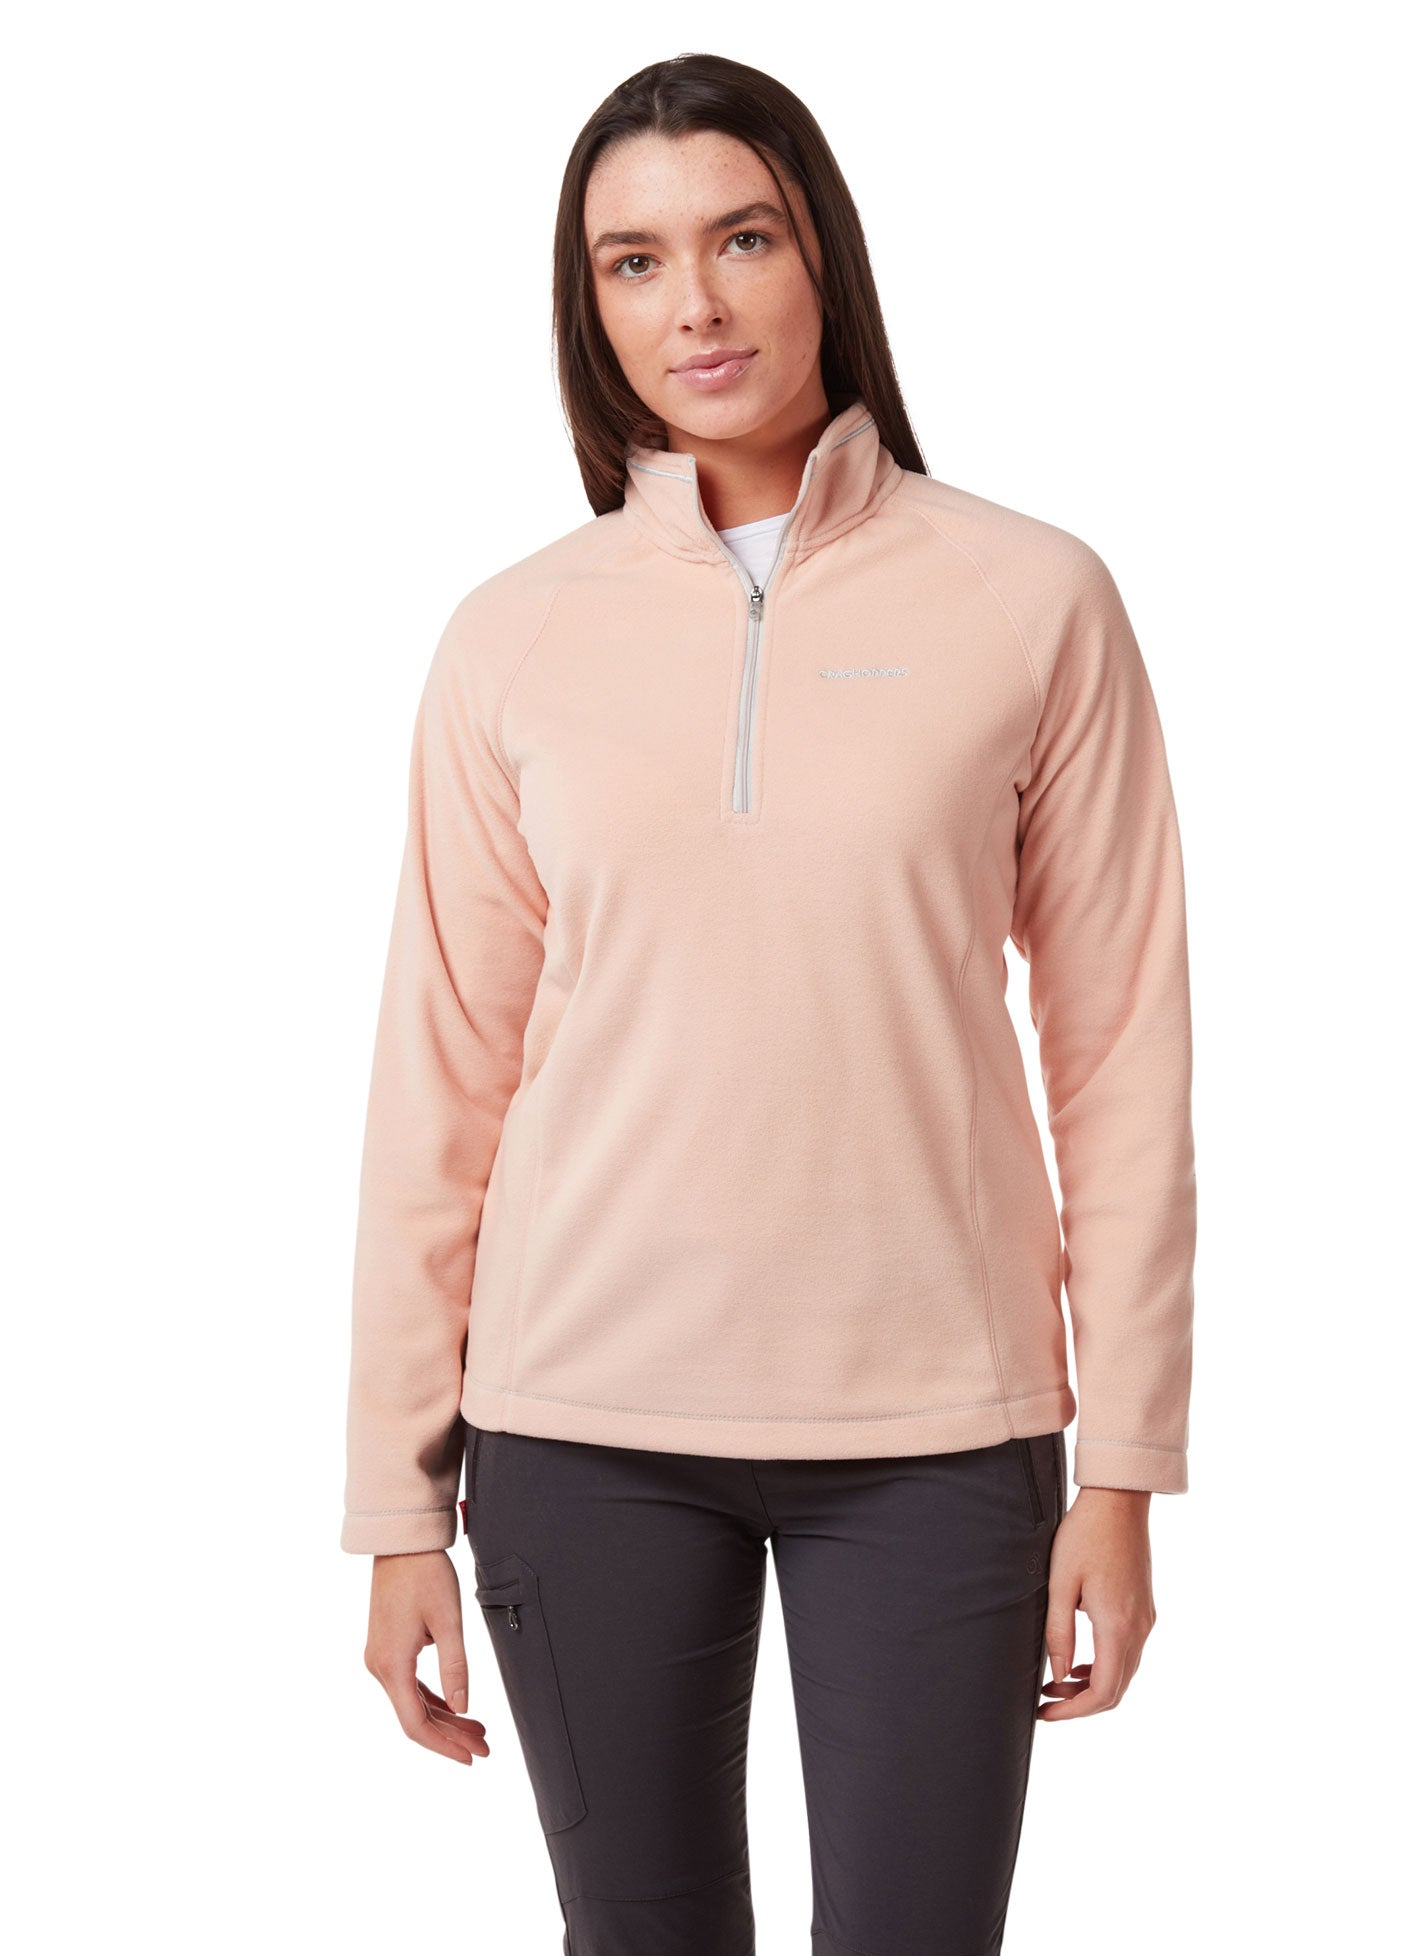 Corsage Pink Miska Women's Microfleece Top by Craghoppers